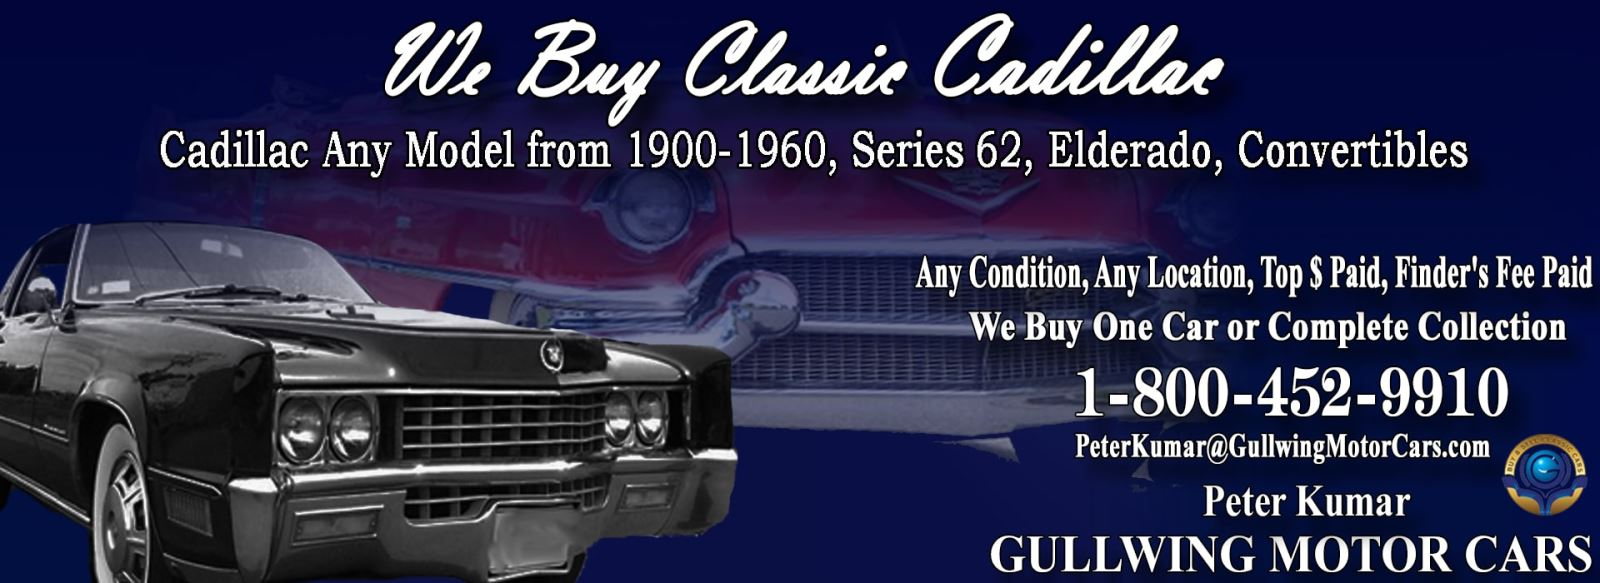 Classic Cadillac for sale, we buy vintage Cadillac. Call Peter Kumar. Gullwing Motor